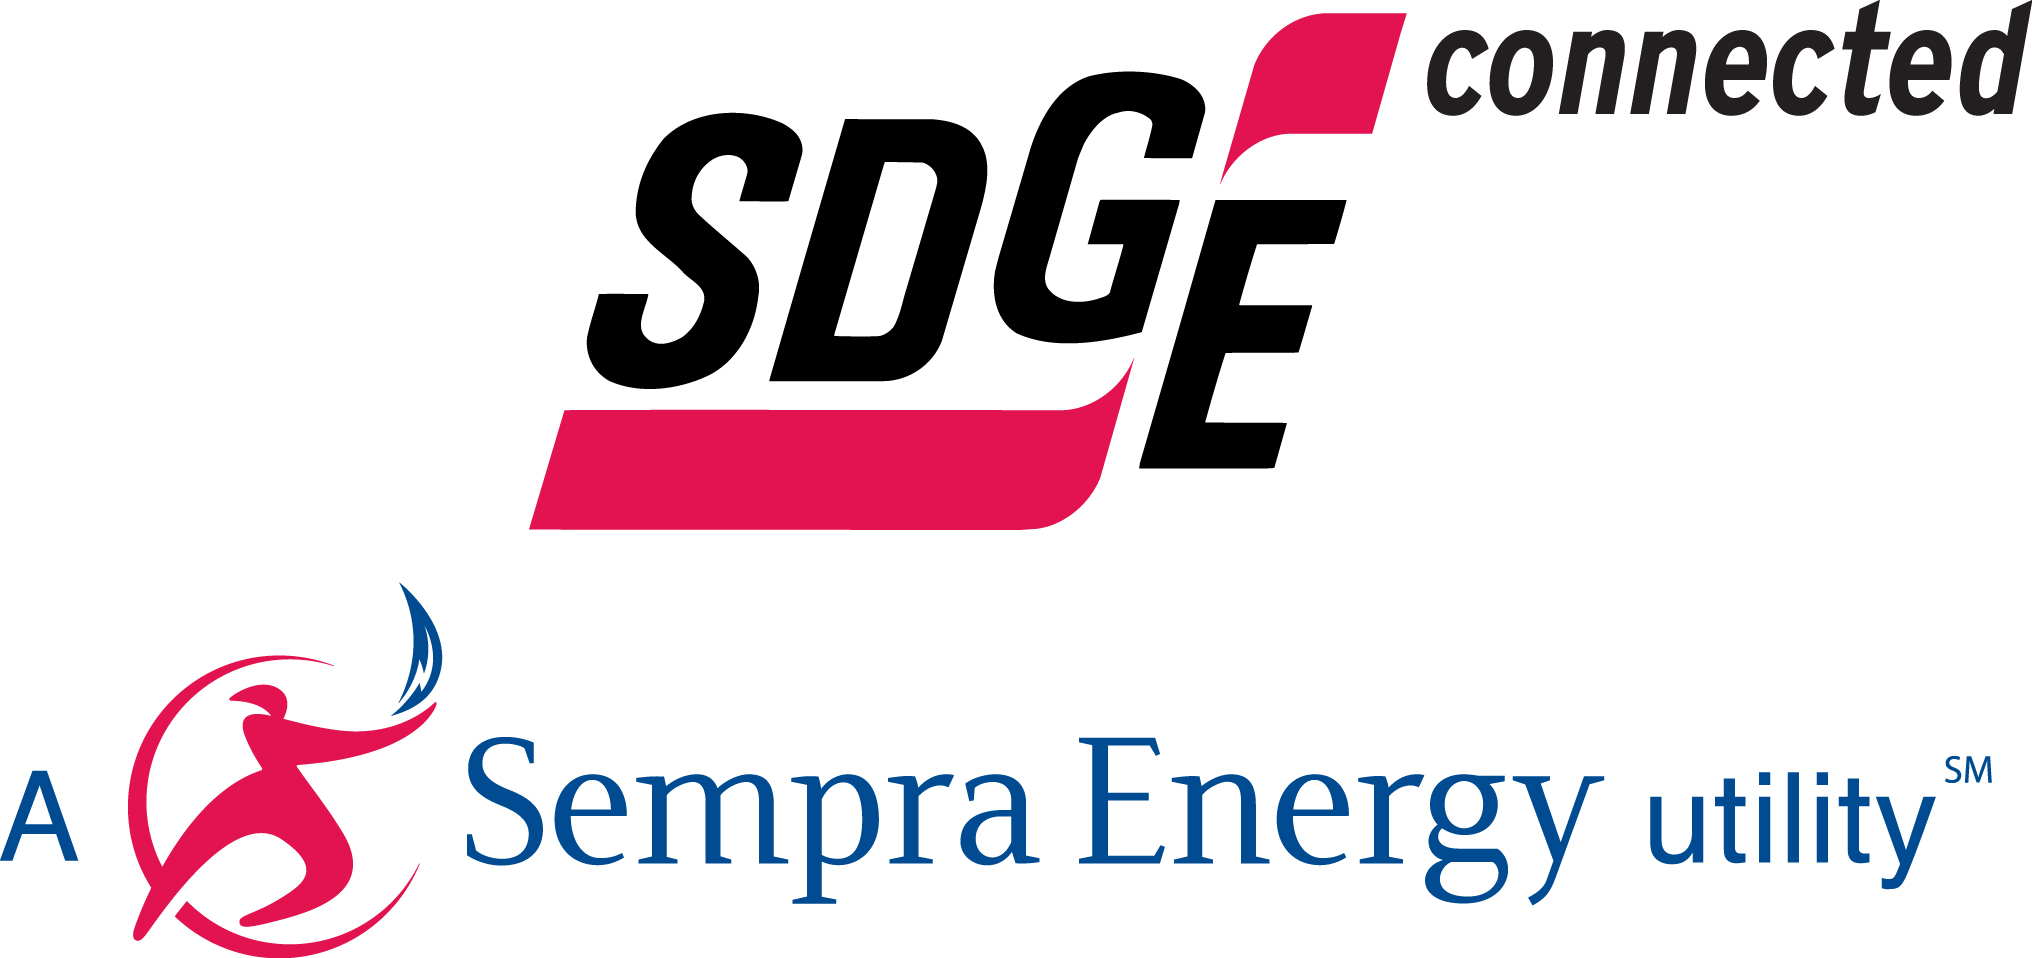 SDGE Connected Logo